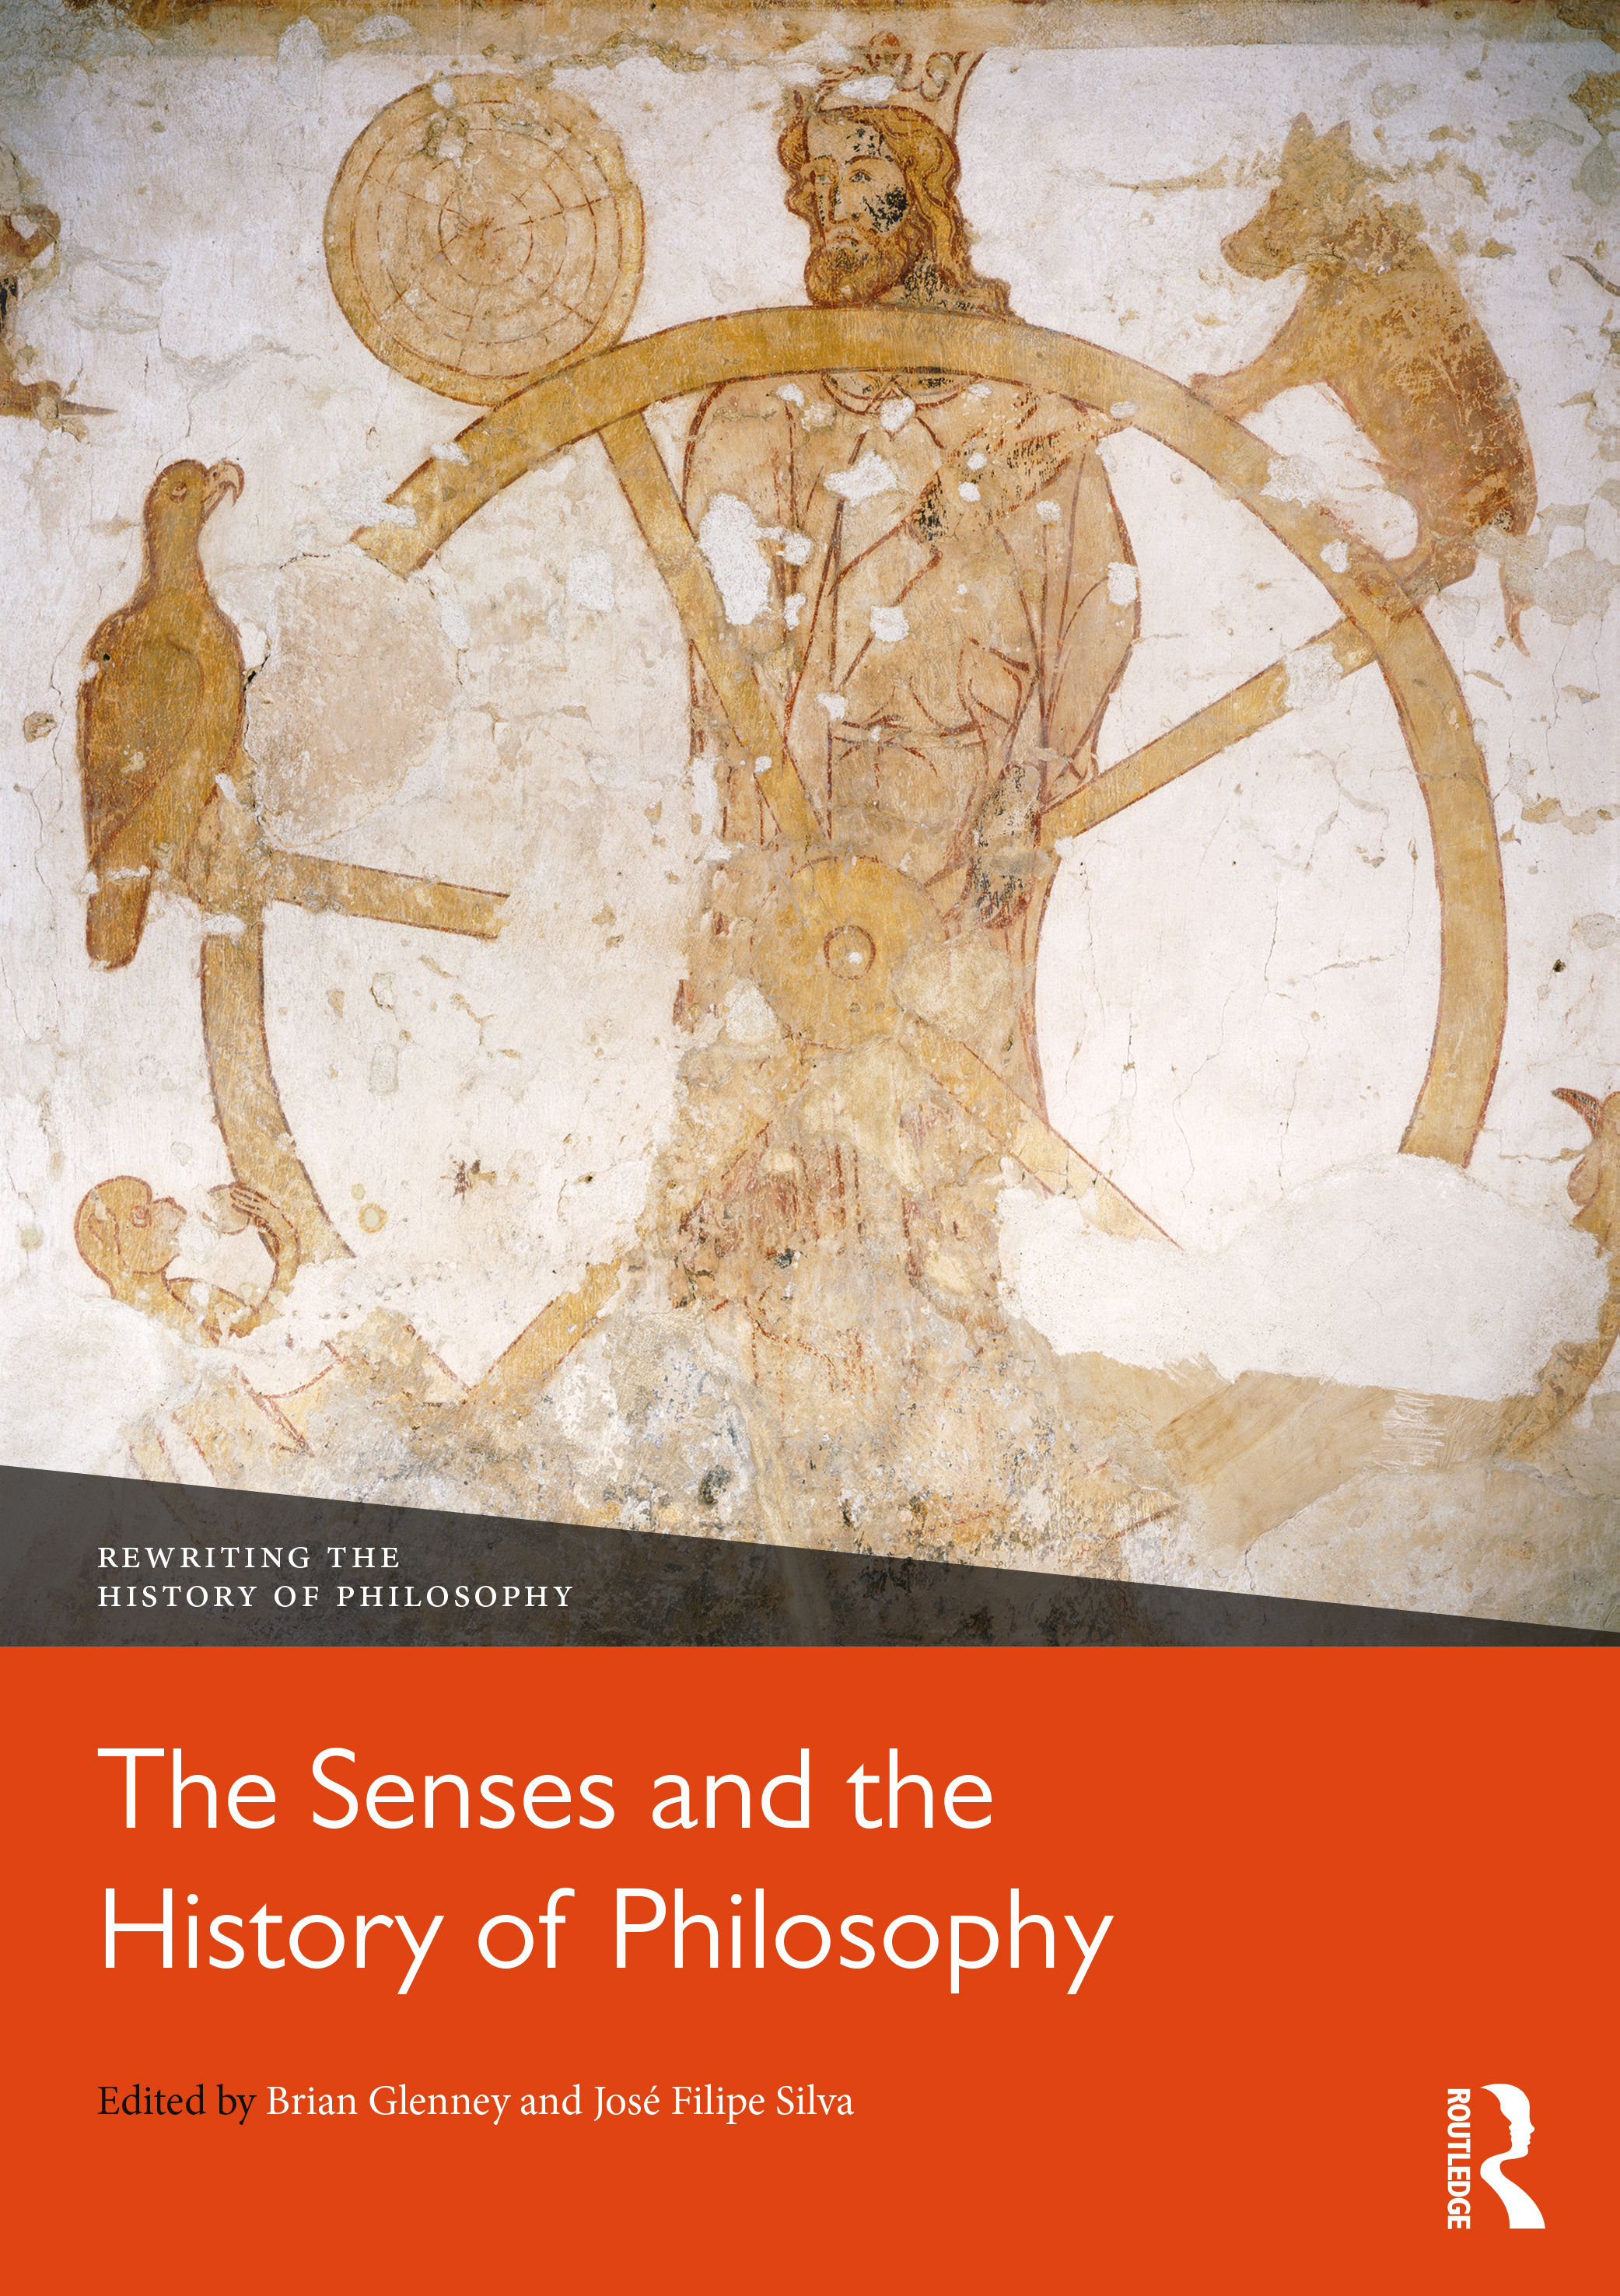 The Senses and the History of Philosophy book cover